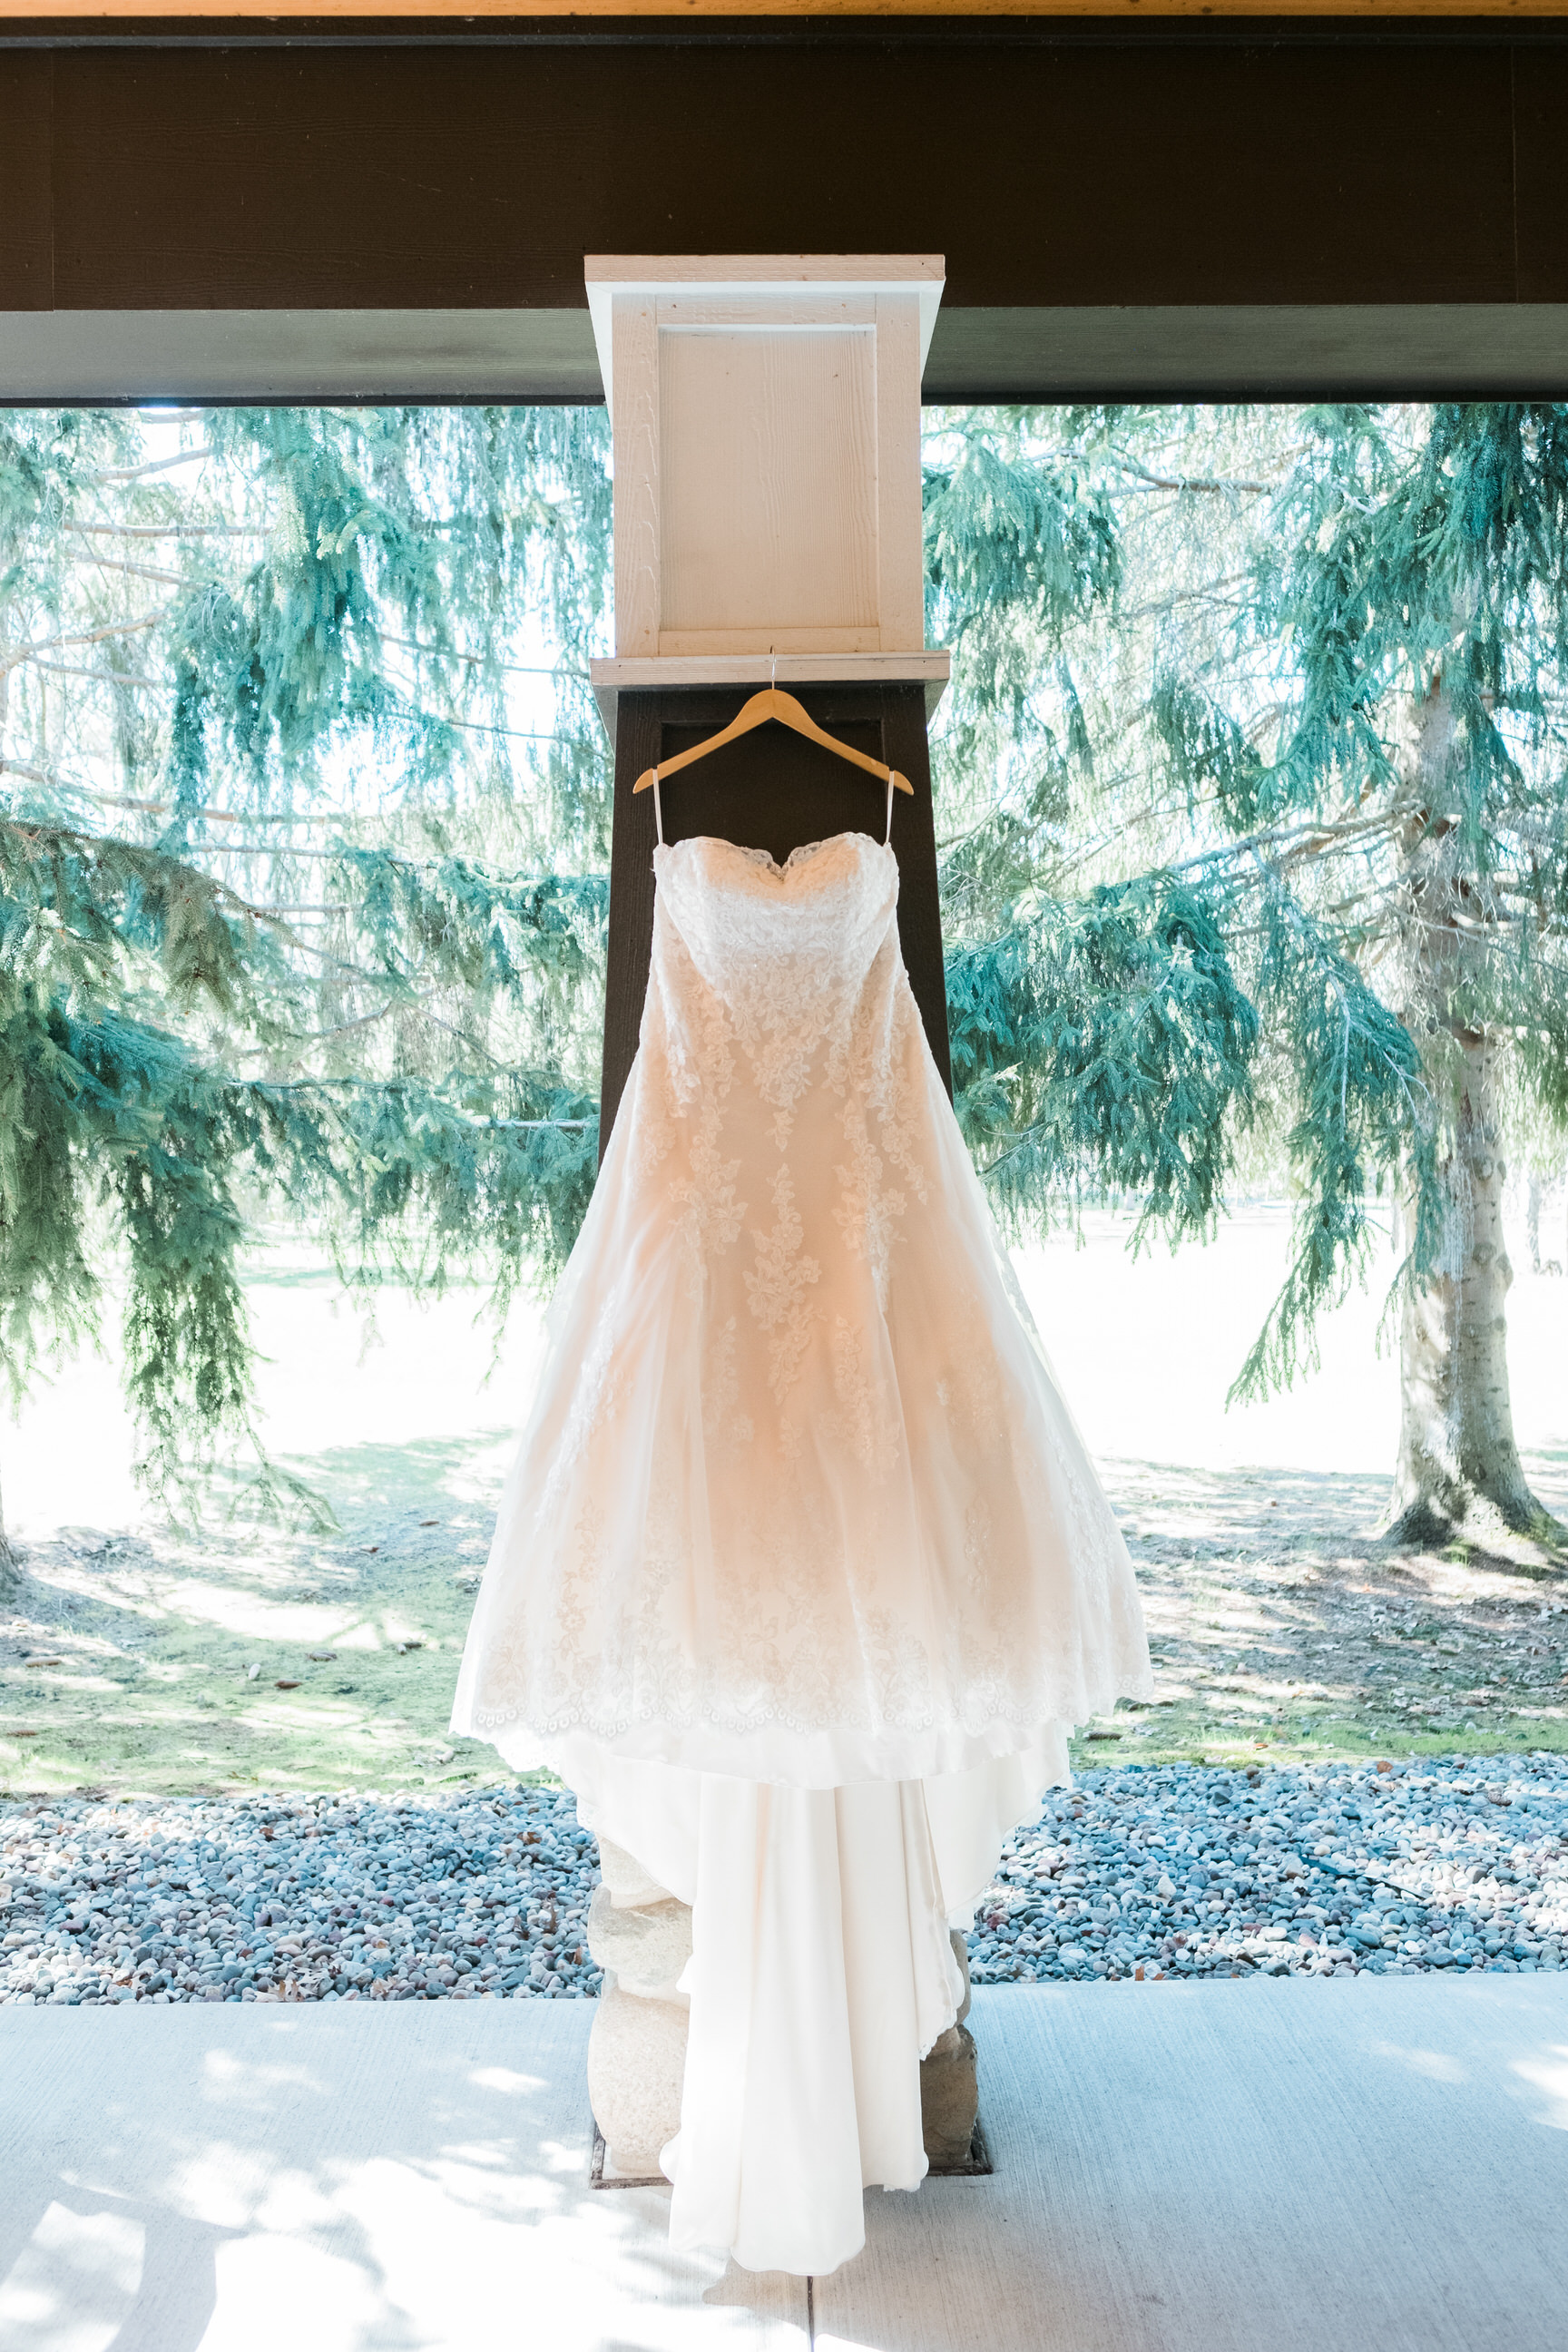 Bride's dress hanging at Grand View Lodge as she gets ready.